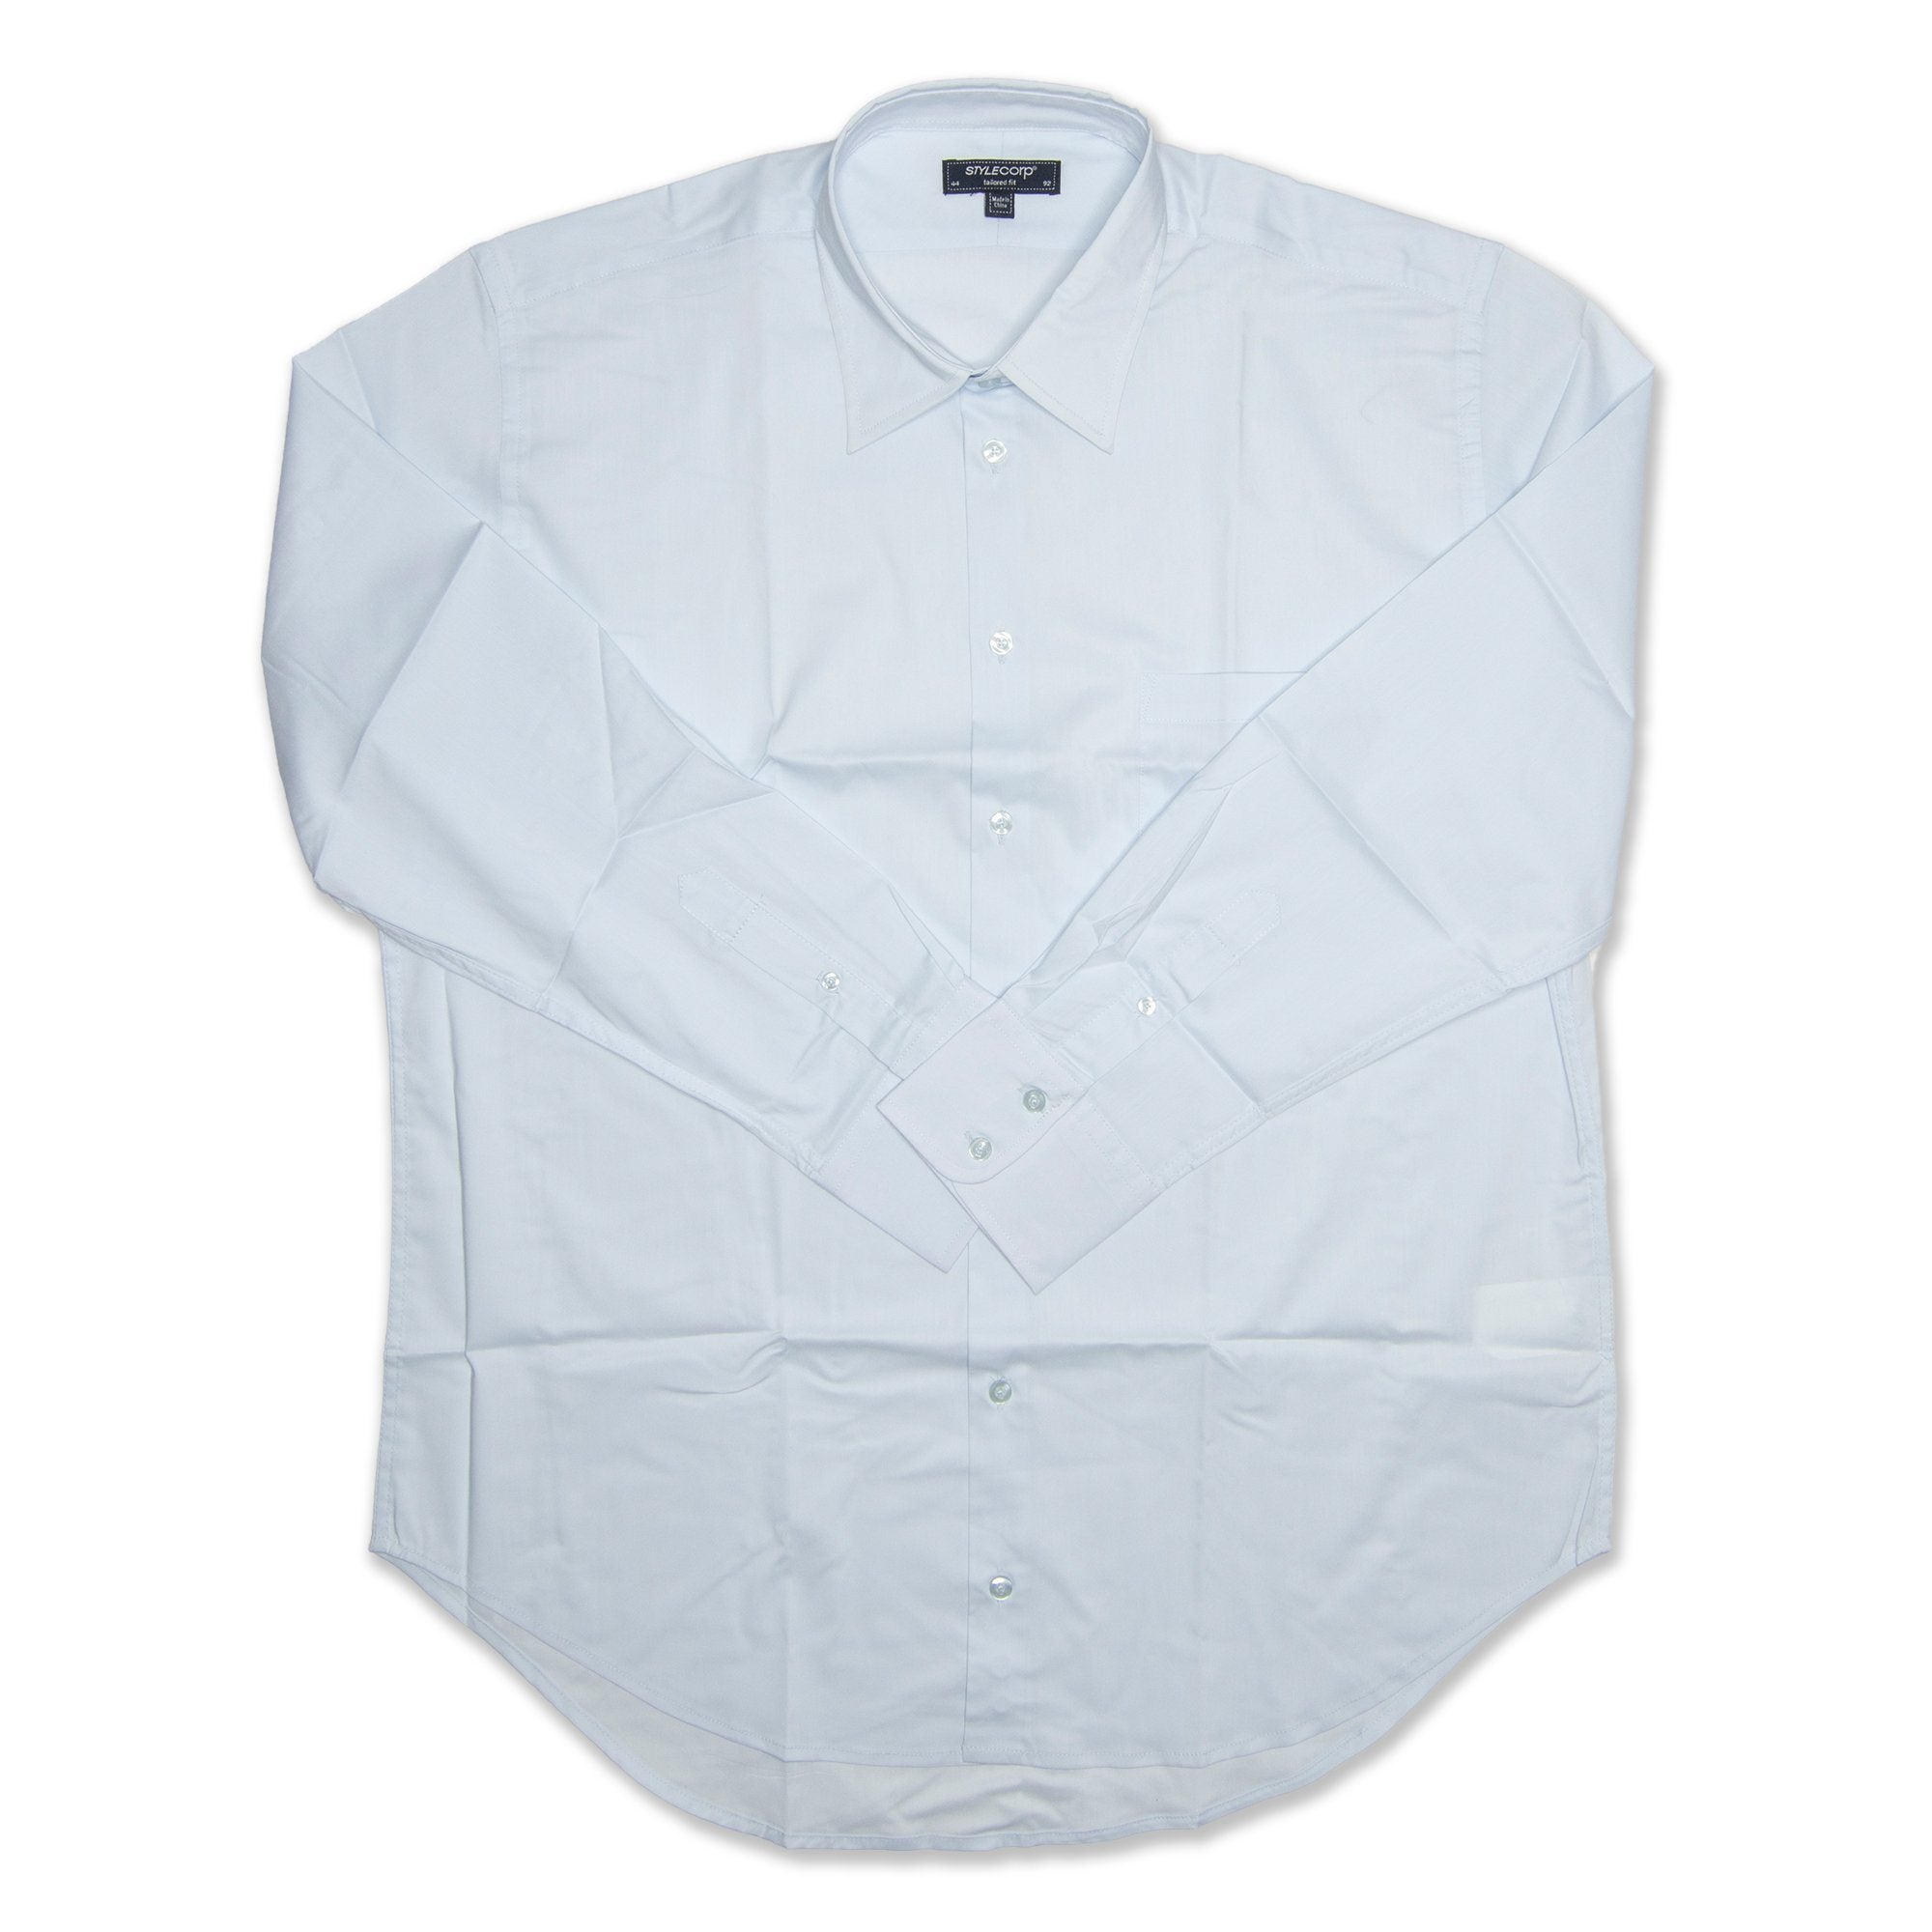 StyleCorp Long Sleeve Men's Shirt - Baby Blue Workwear StyleCorp